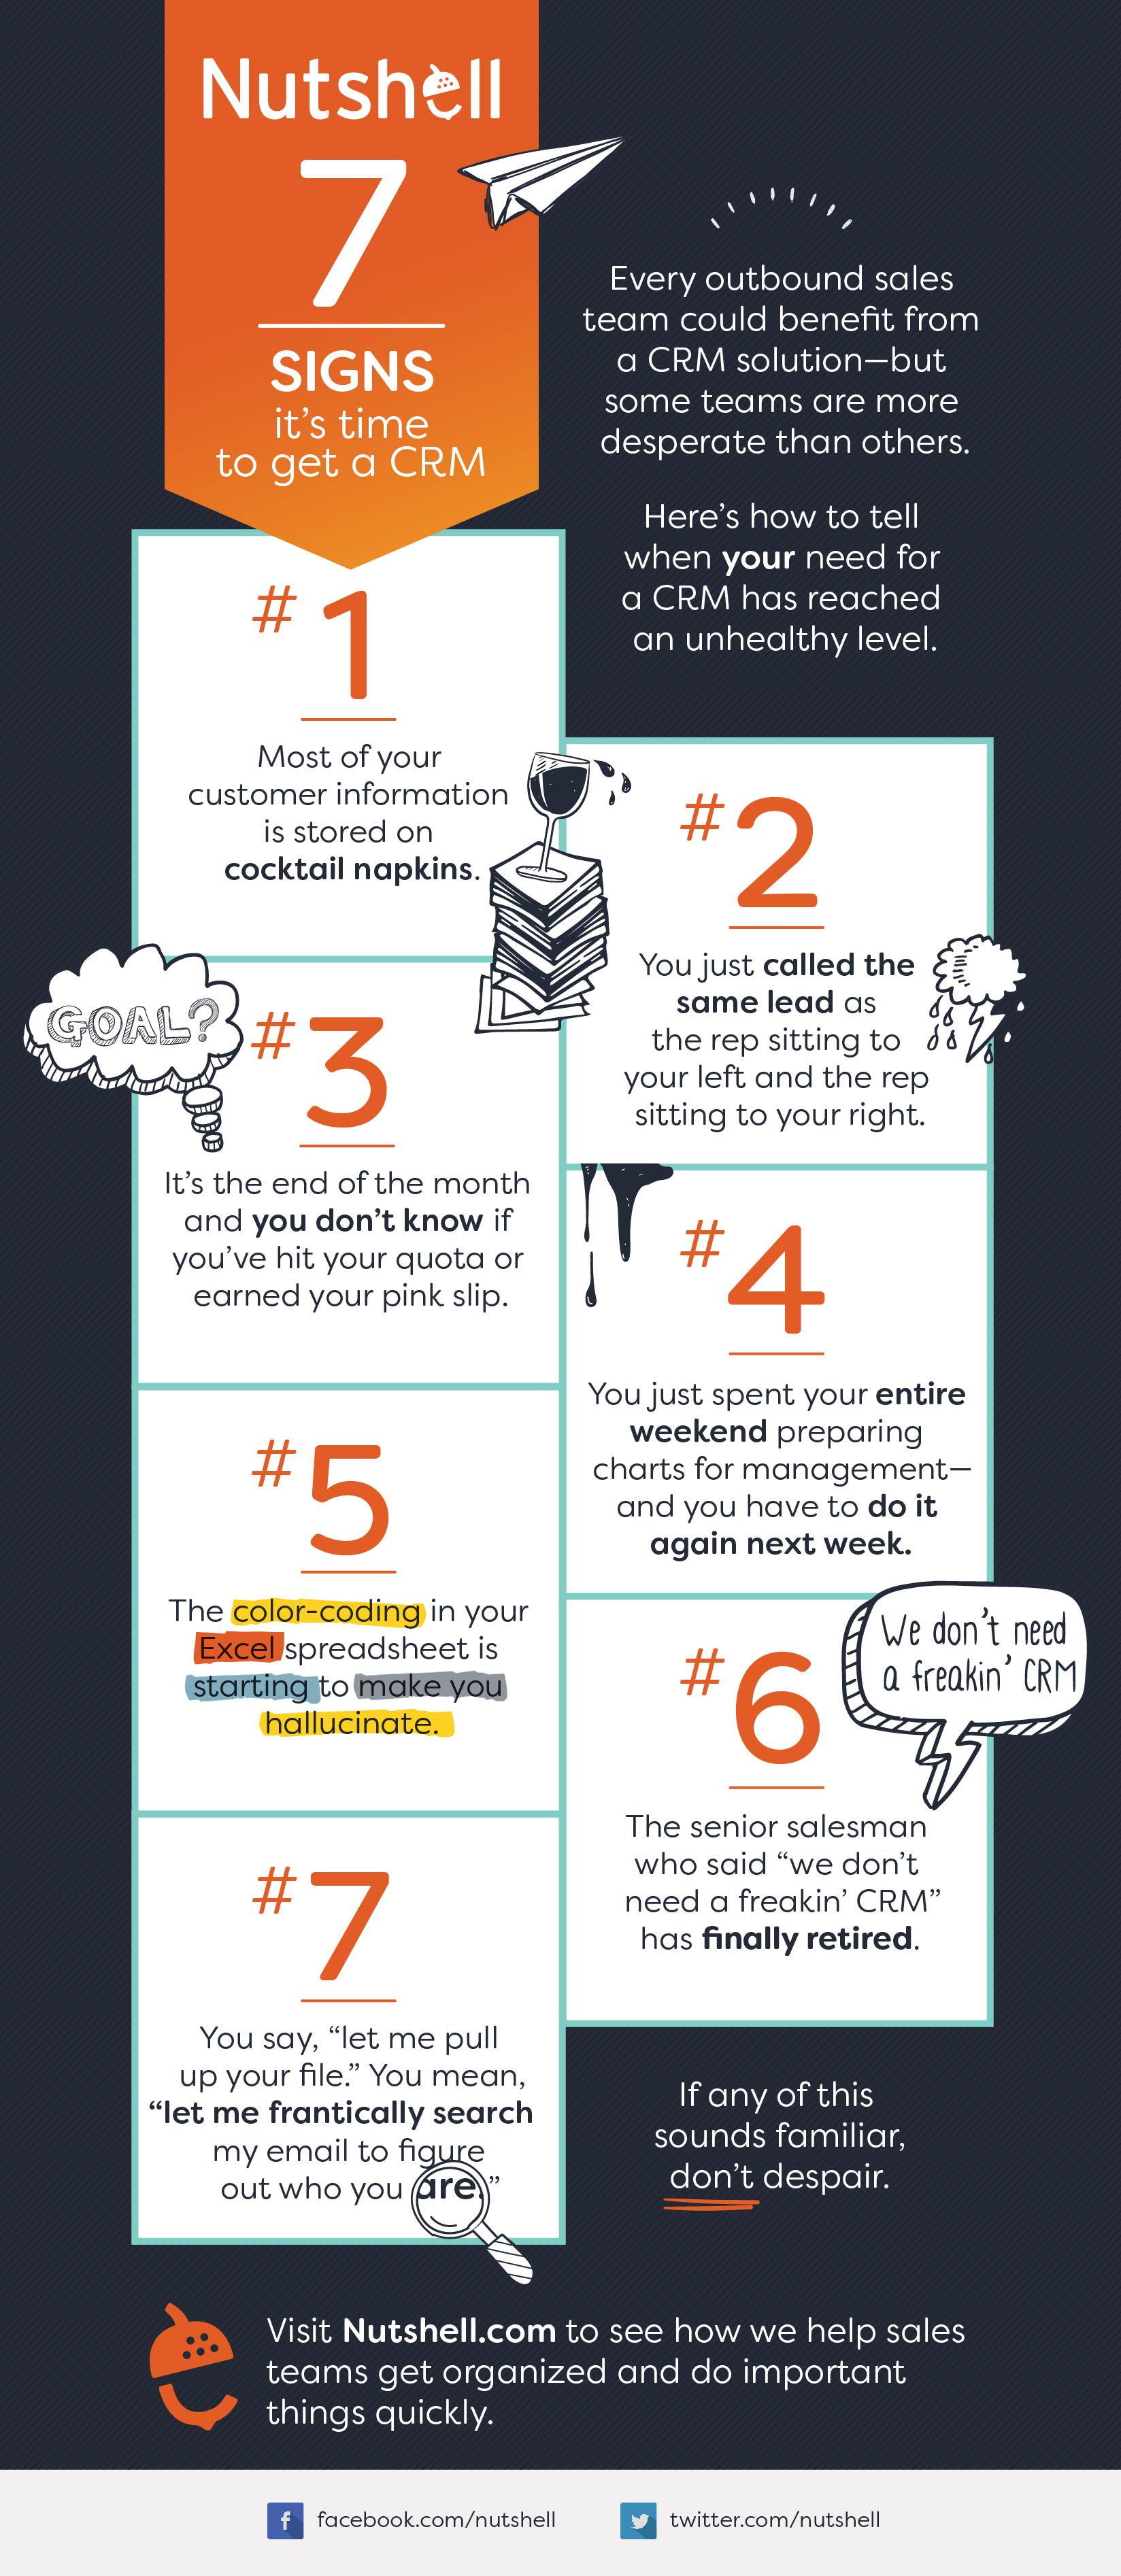 Nutshell 7 signs you need a crm infographic time to get a crm